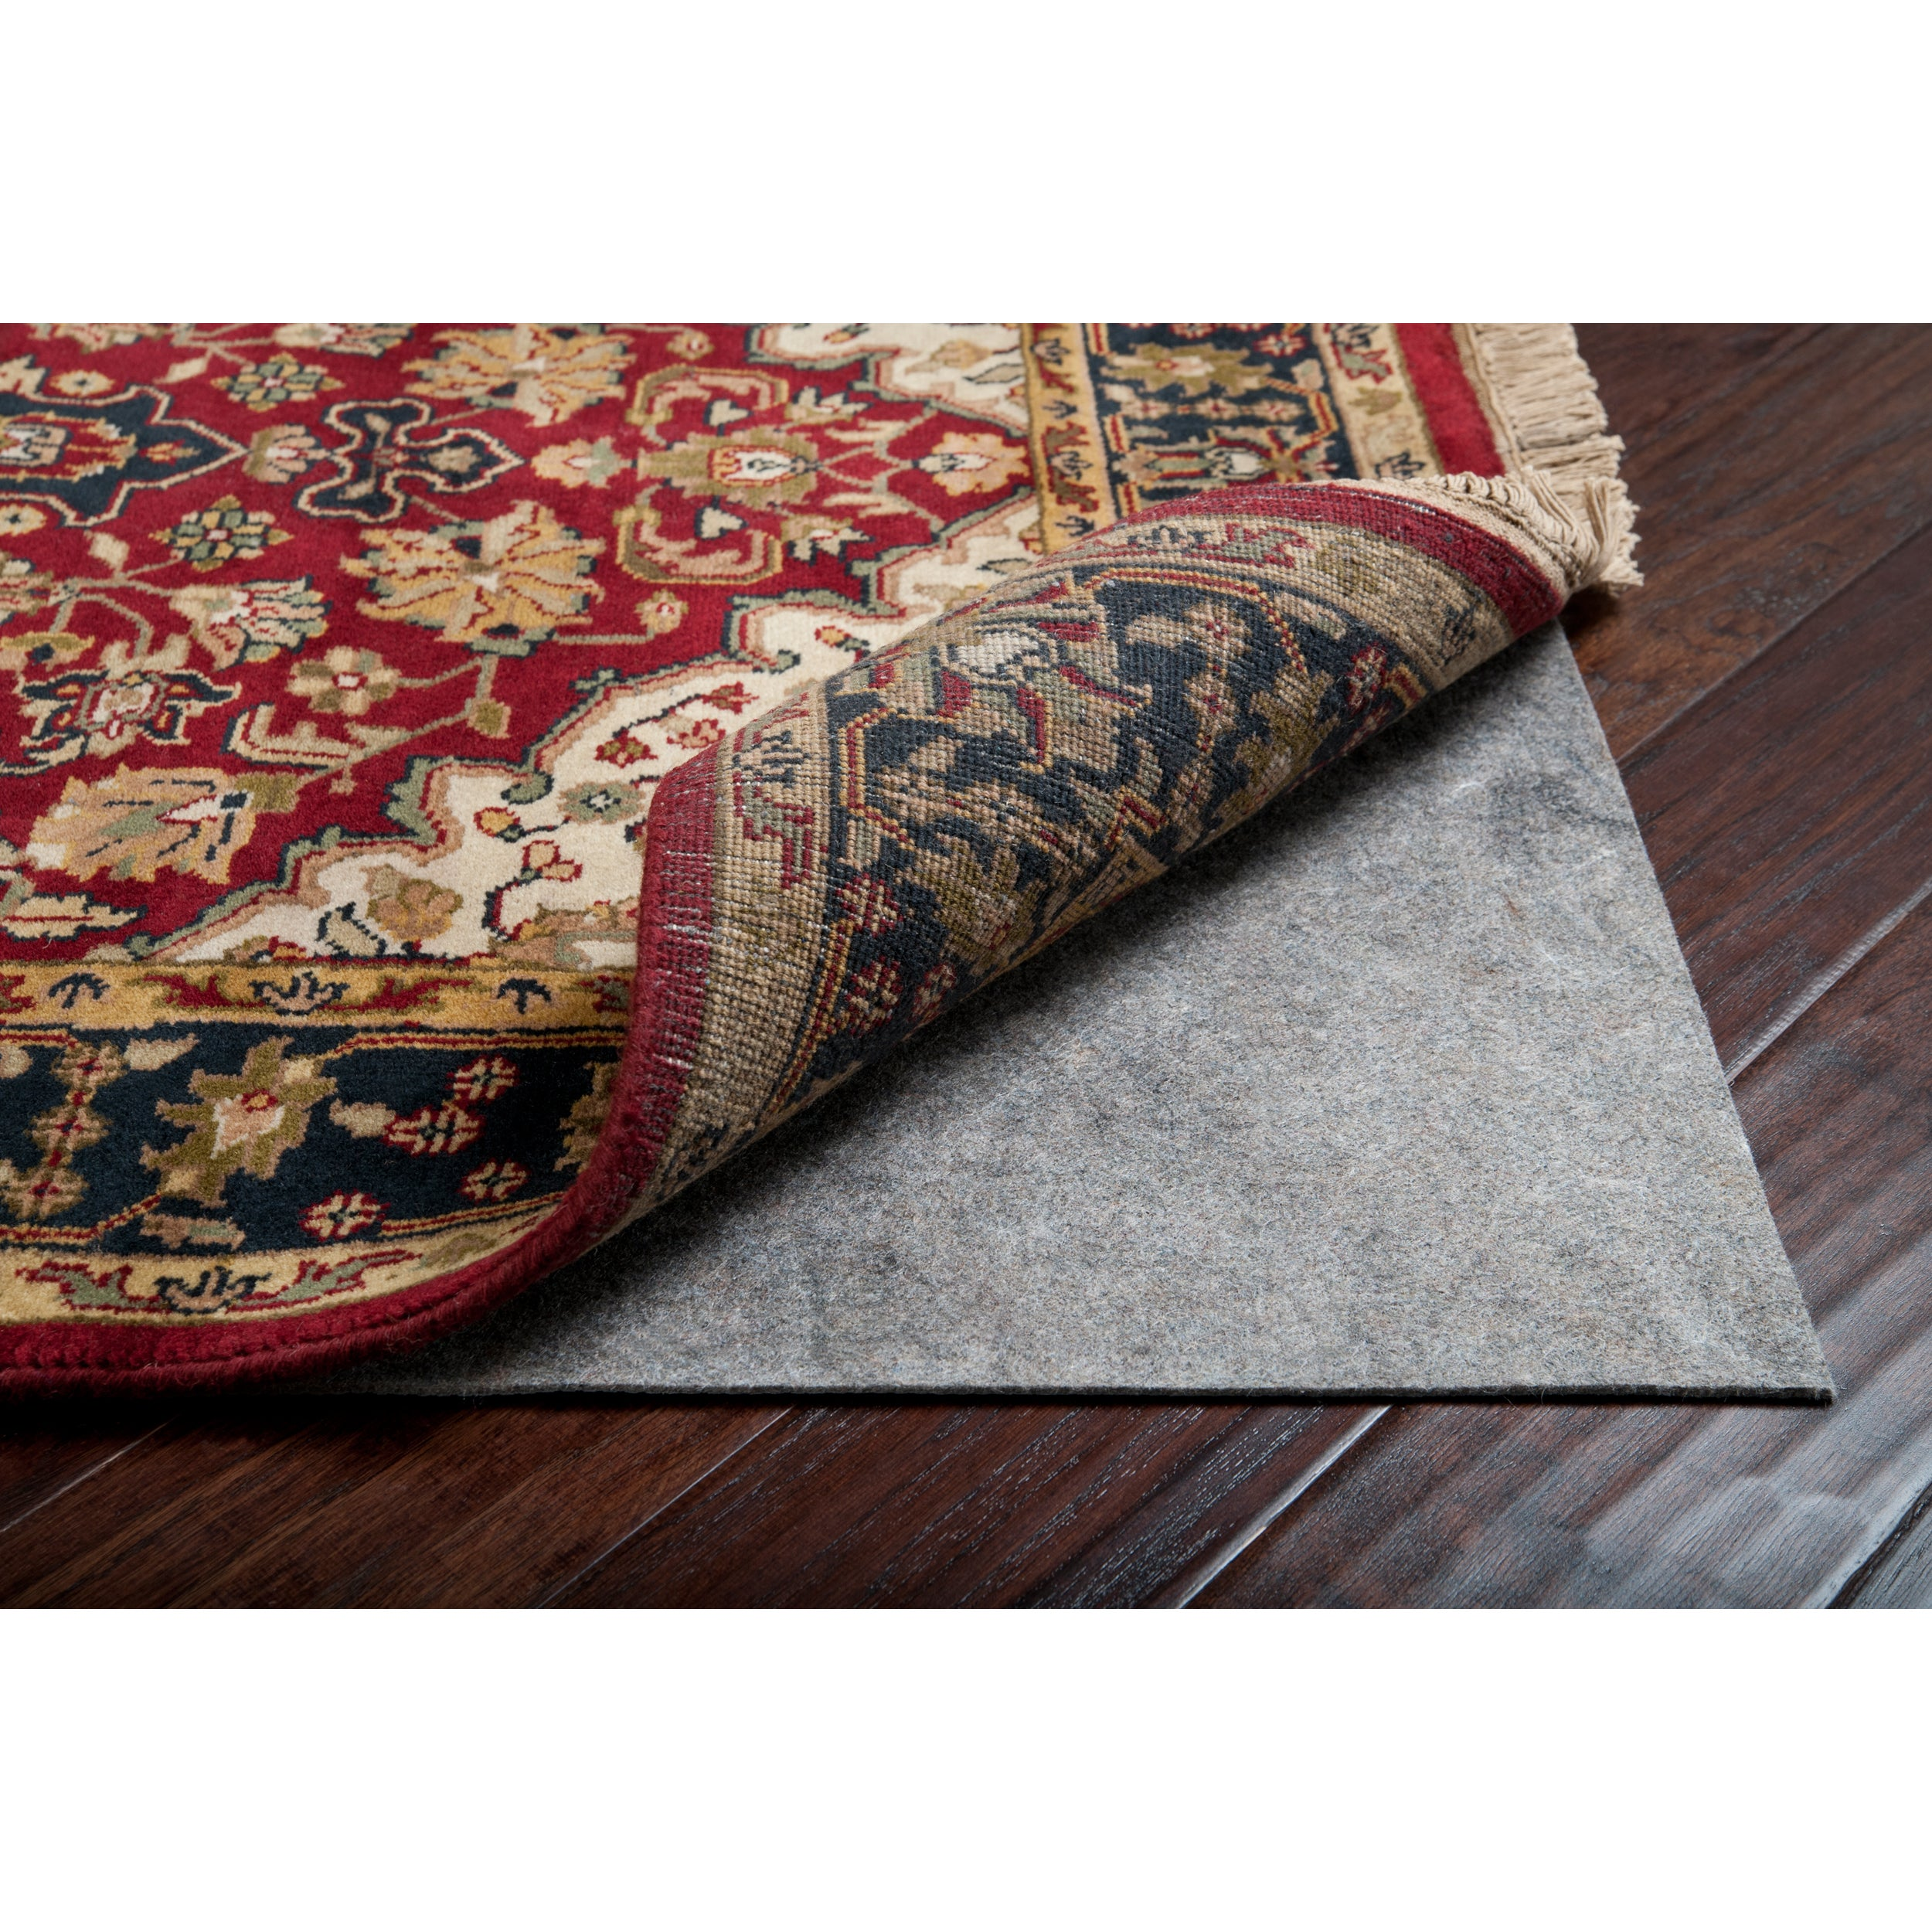 Rotell Rug Pad (2'6 x 12')